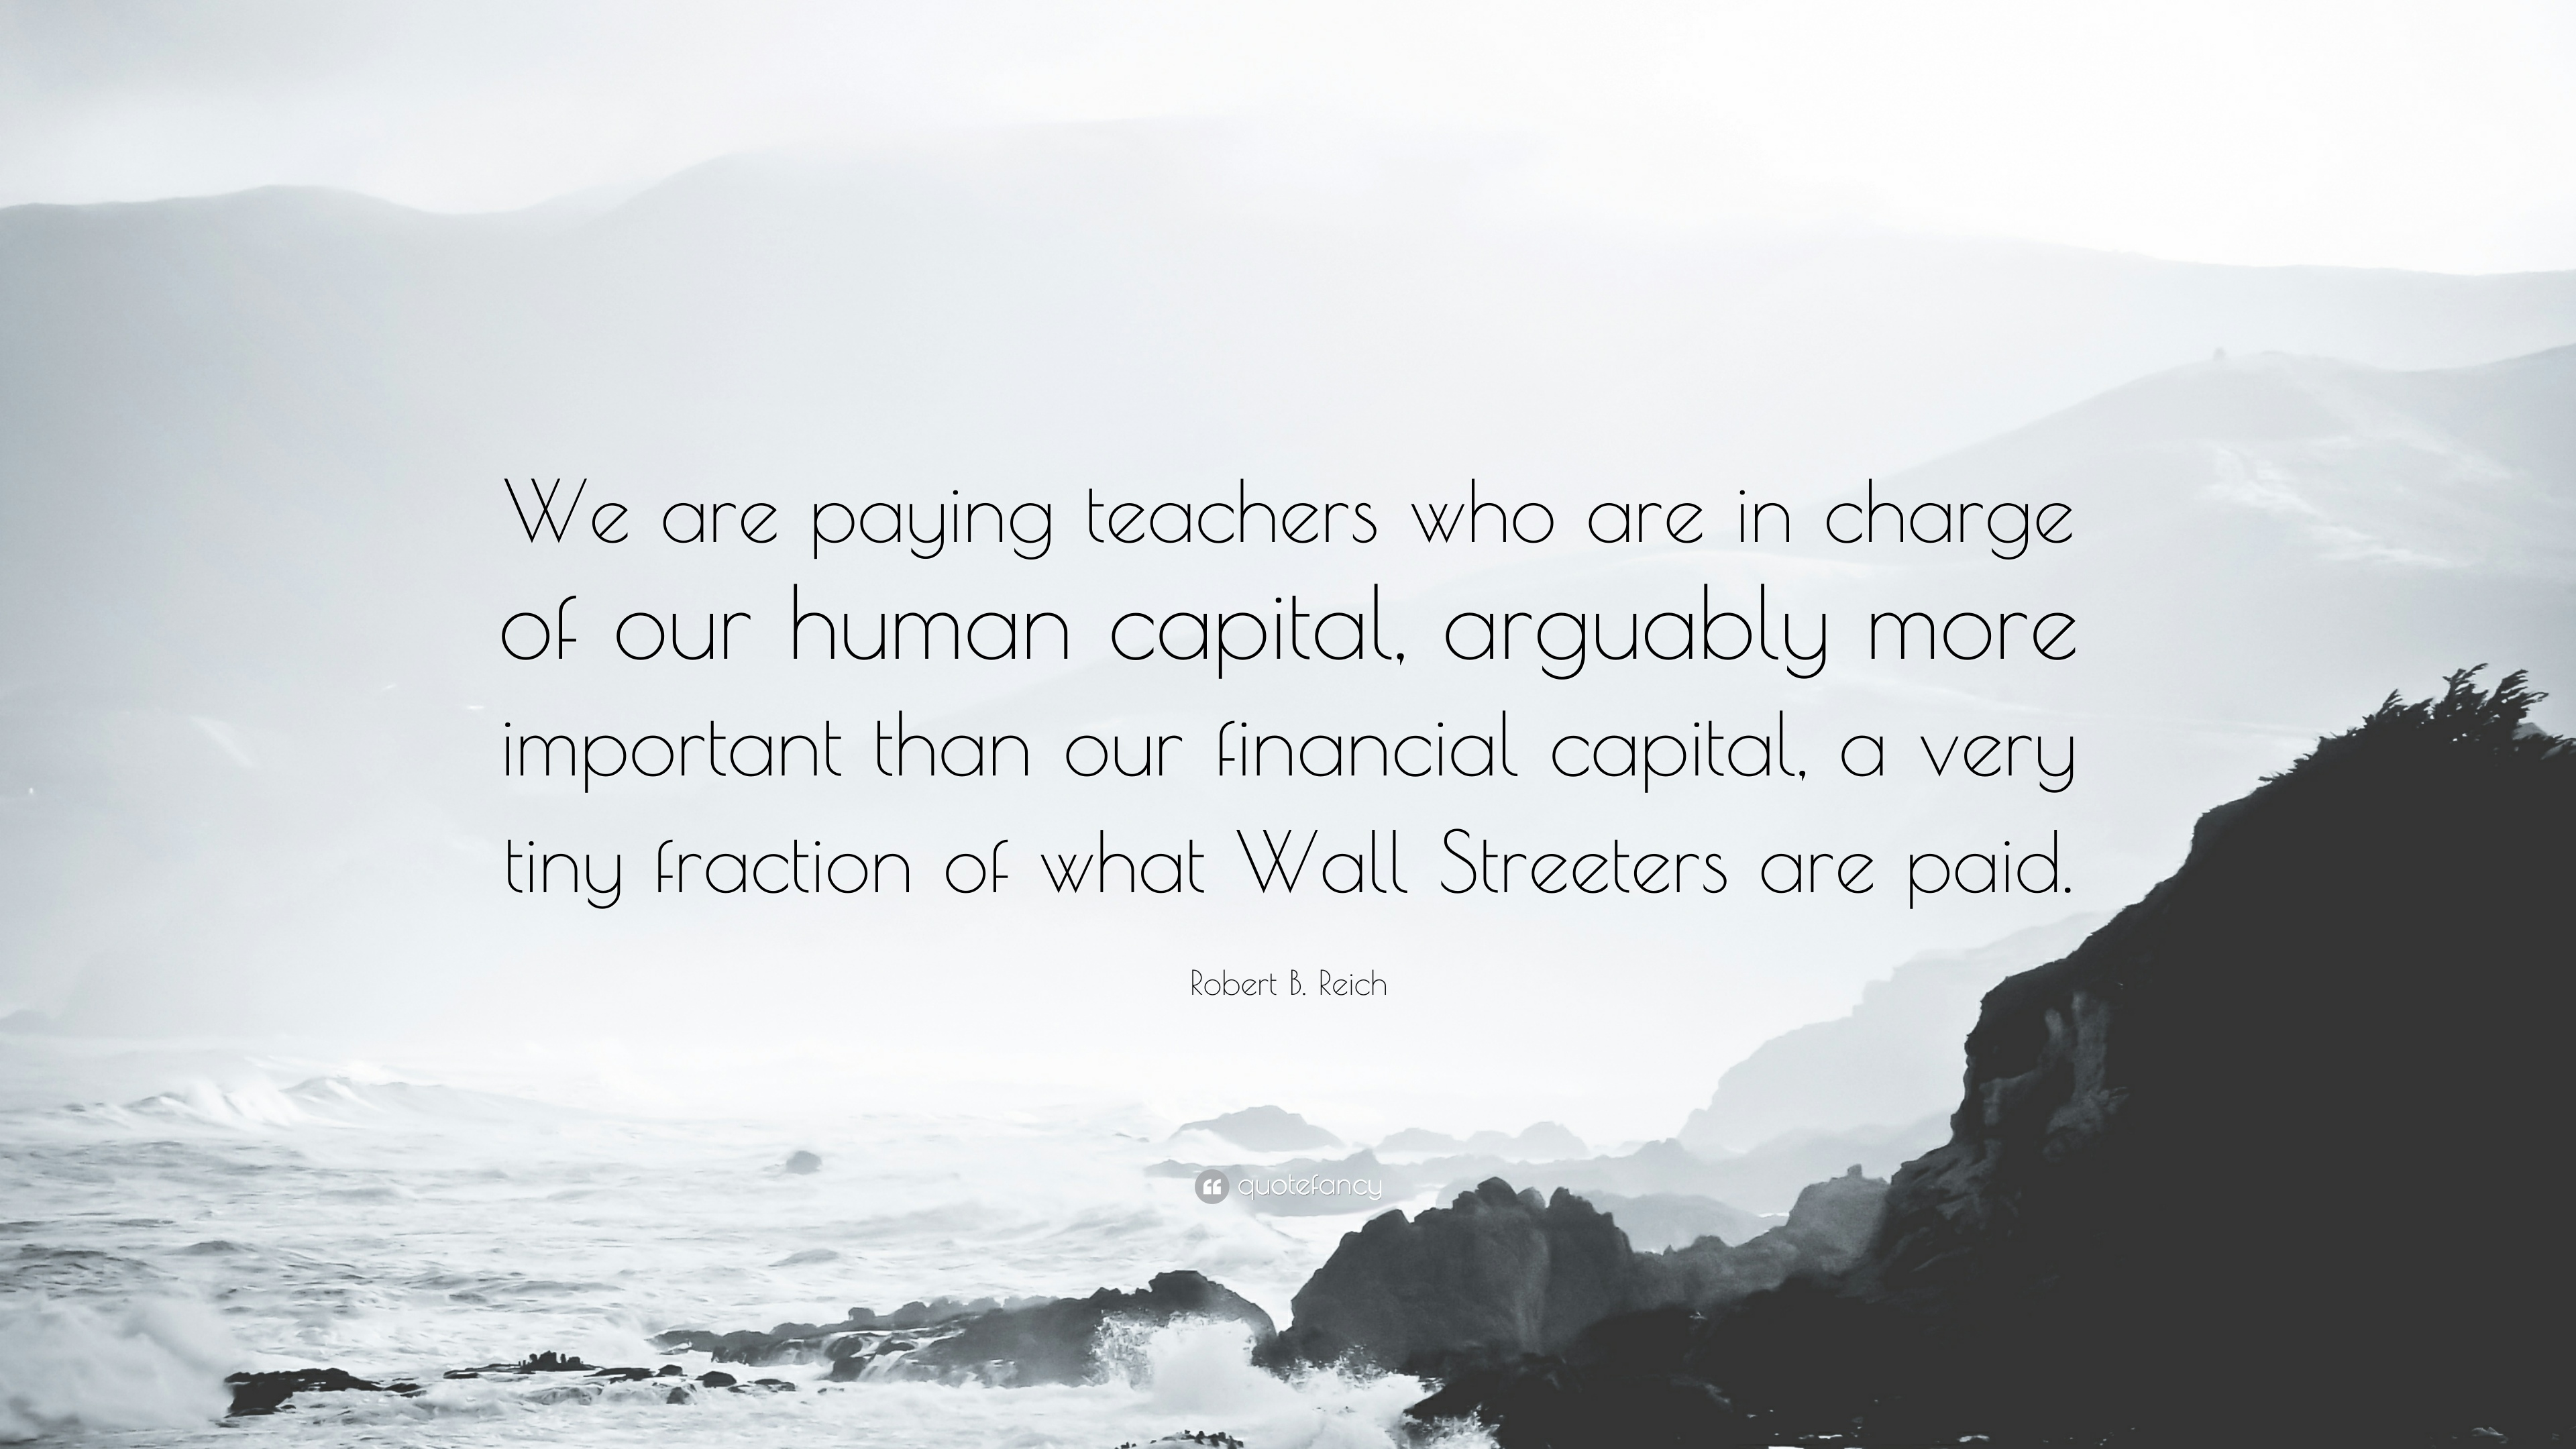 why are important teachers paid